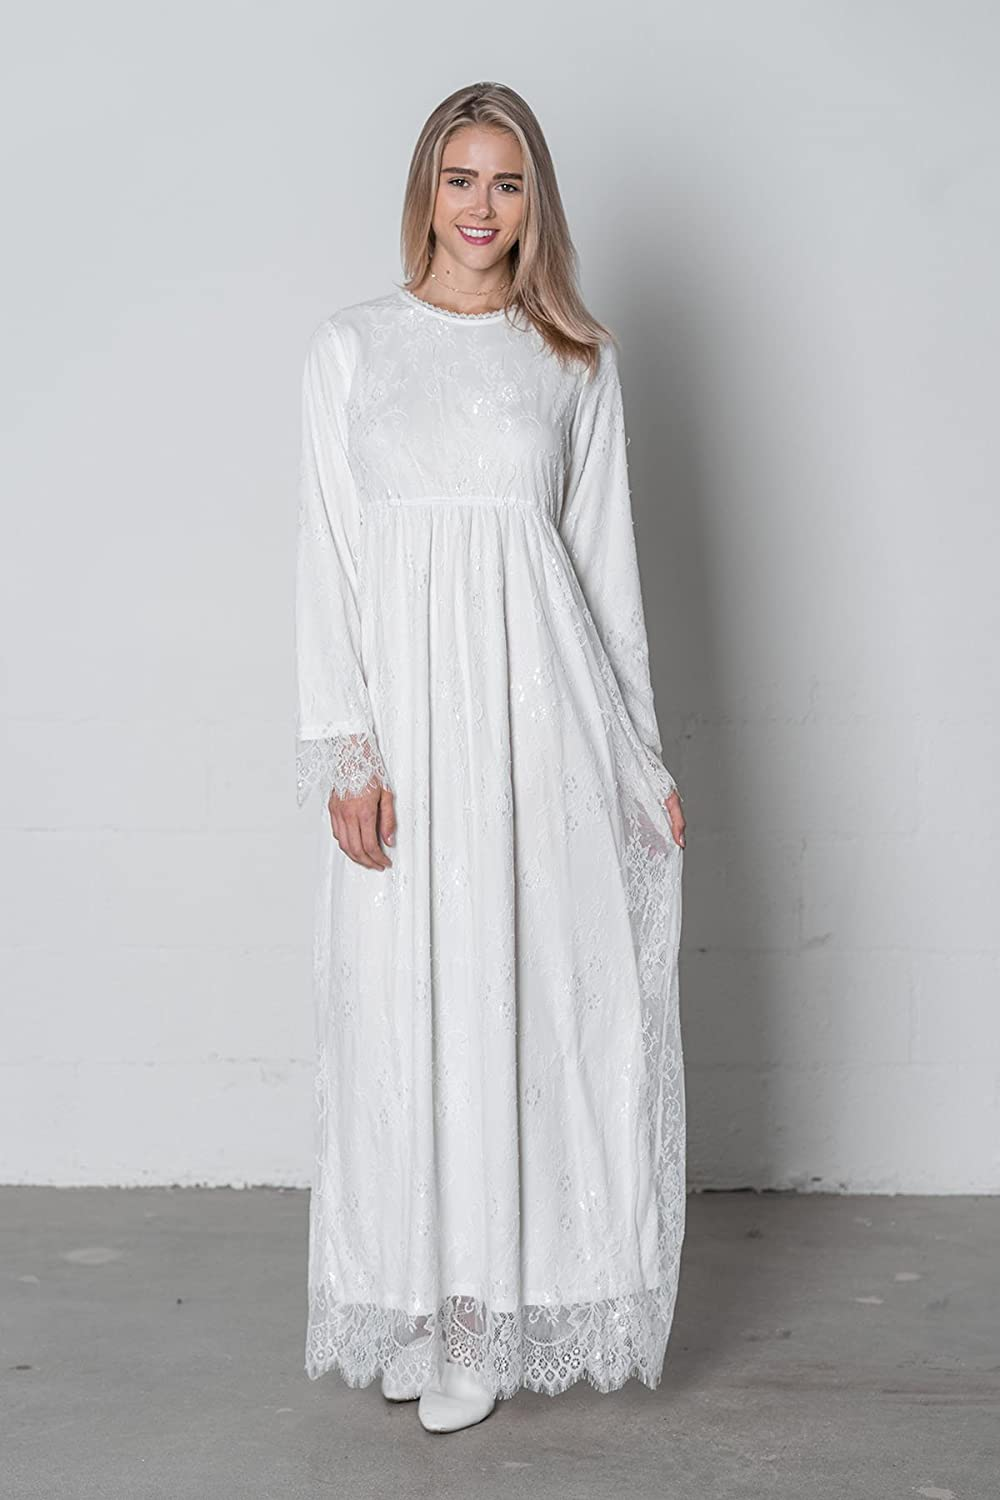 Edwardian Ladies Clothing – 1900, 1910s, Titanic Era ModWhite White Jasmine Dress $74.00 AT vintagedancer.com